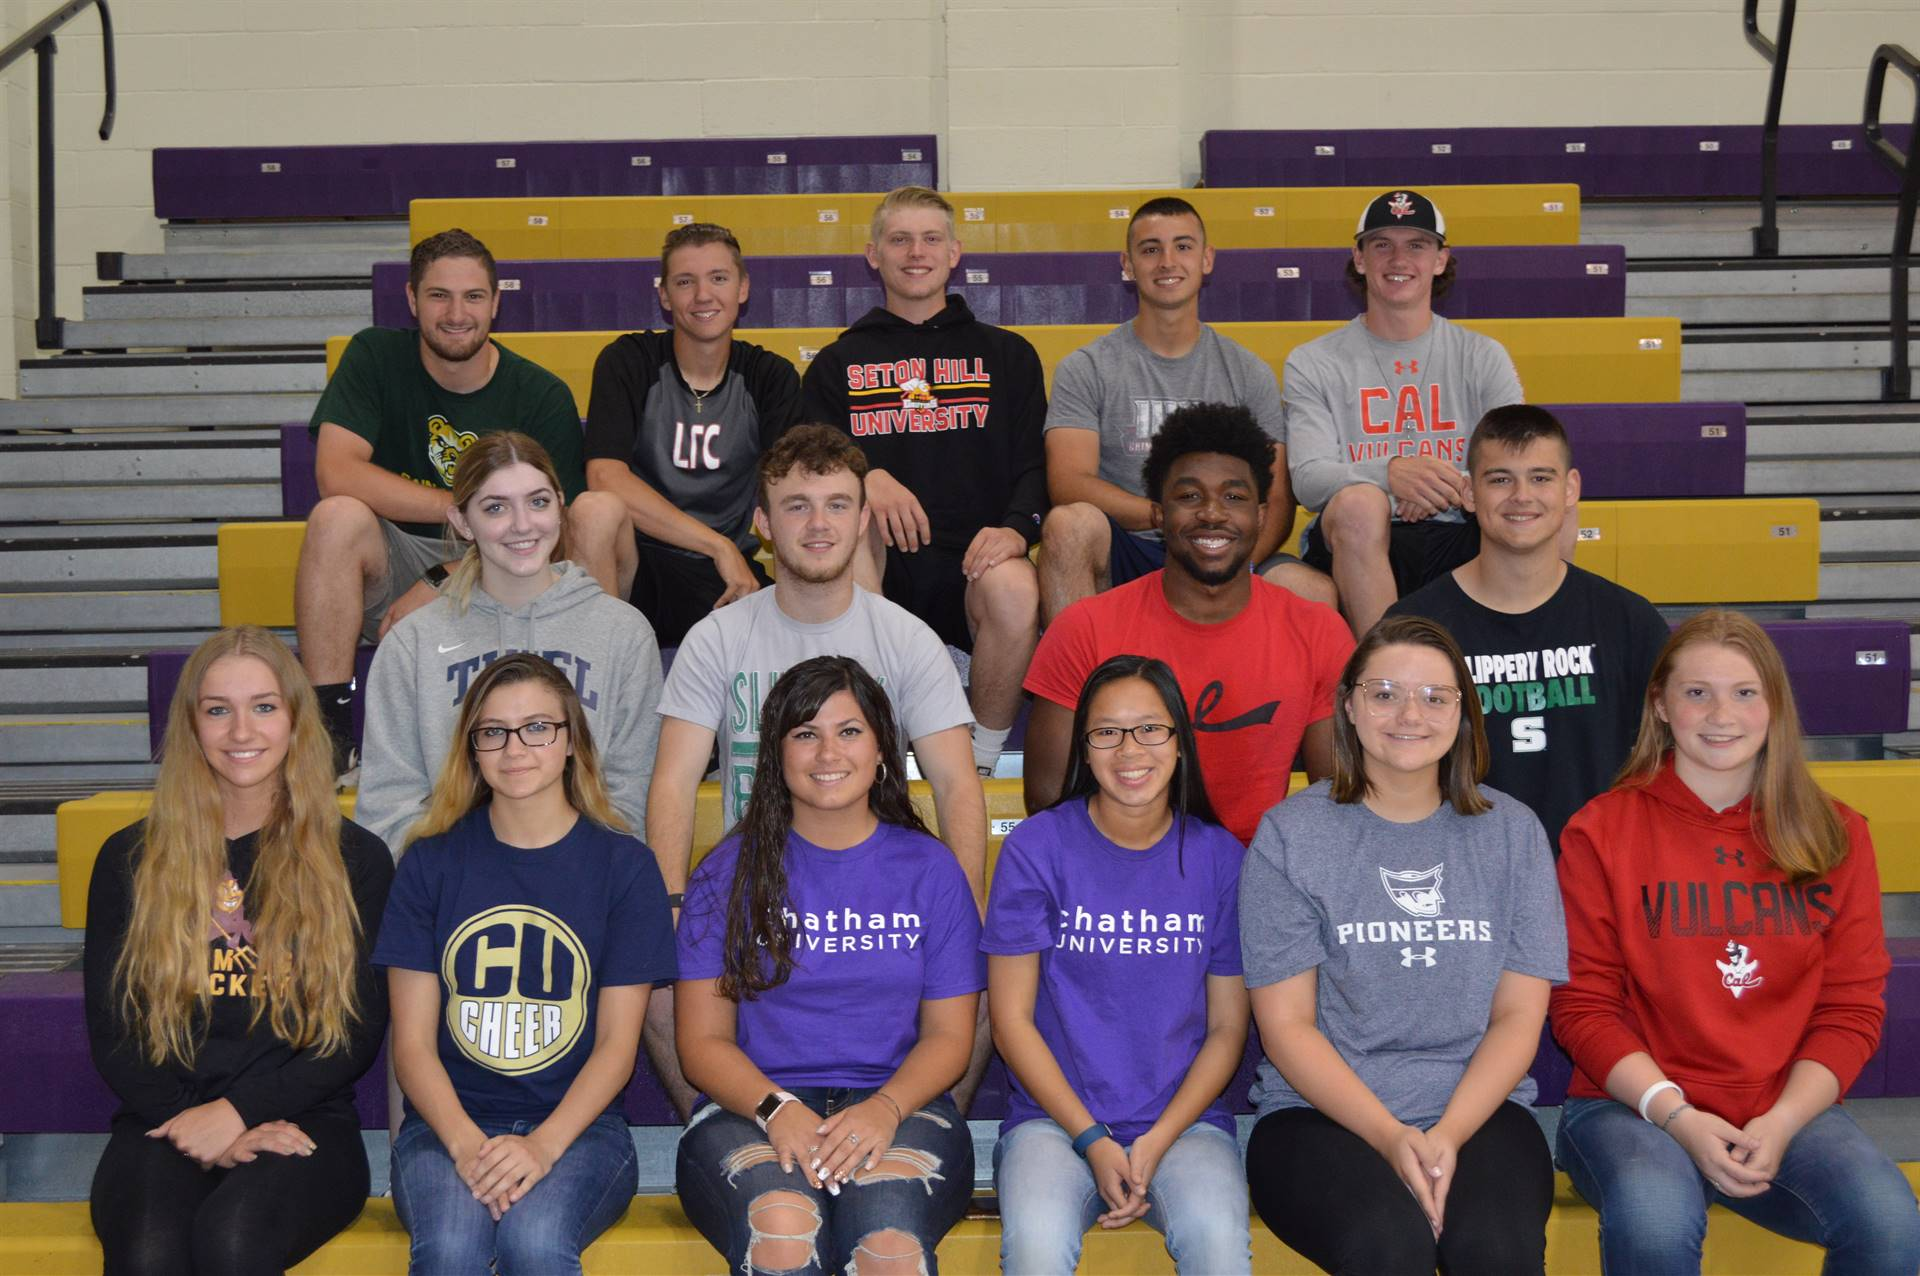 24 Seniors will continue their athletic careers at the collegiate level